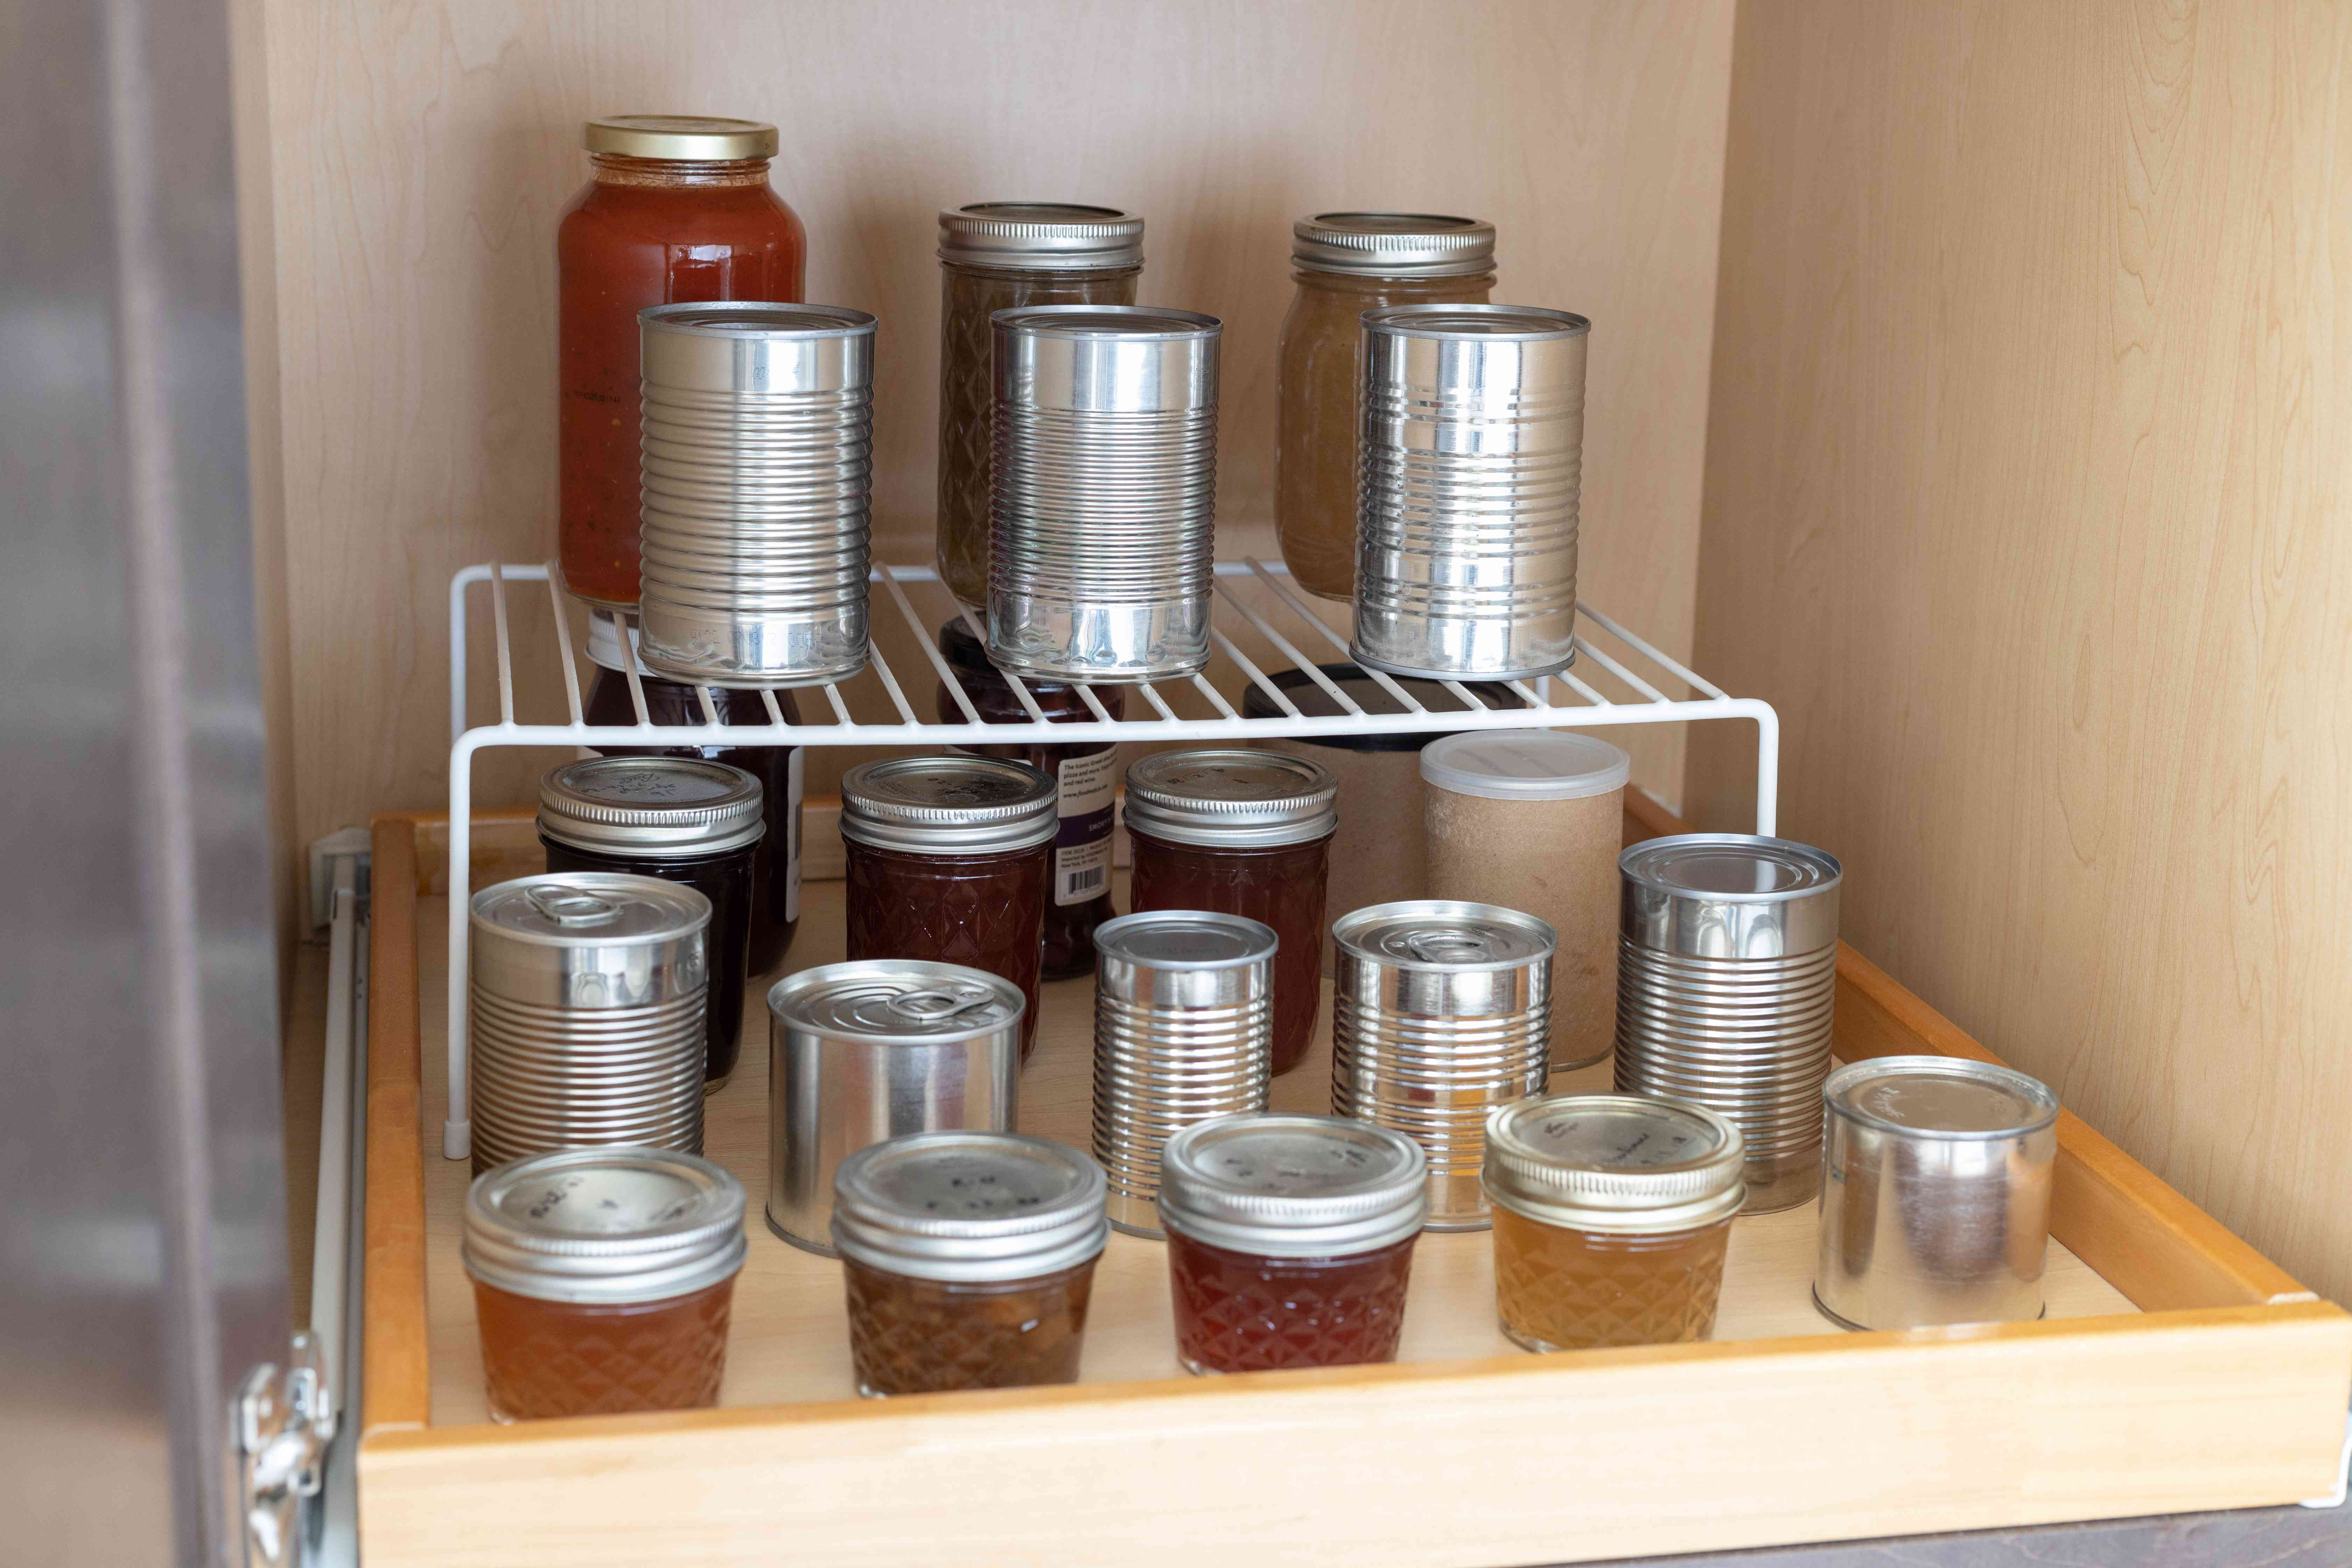 Kitchen pantry shelf with organized glass and containers with wire shelf